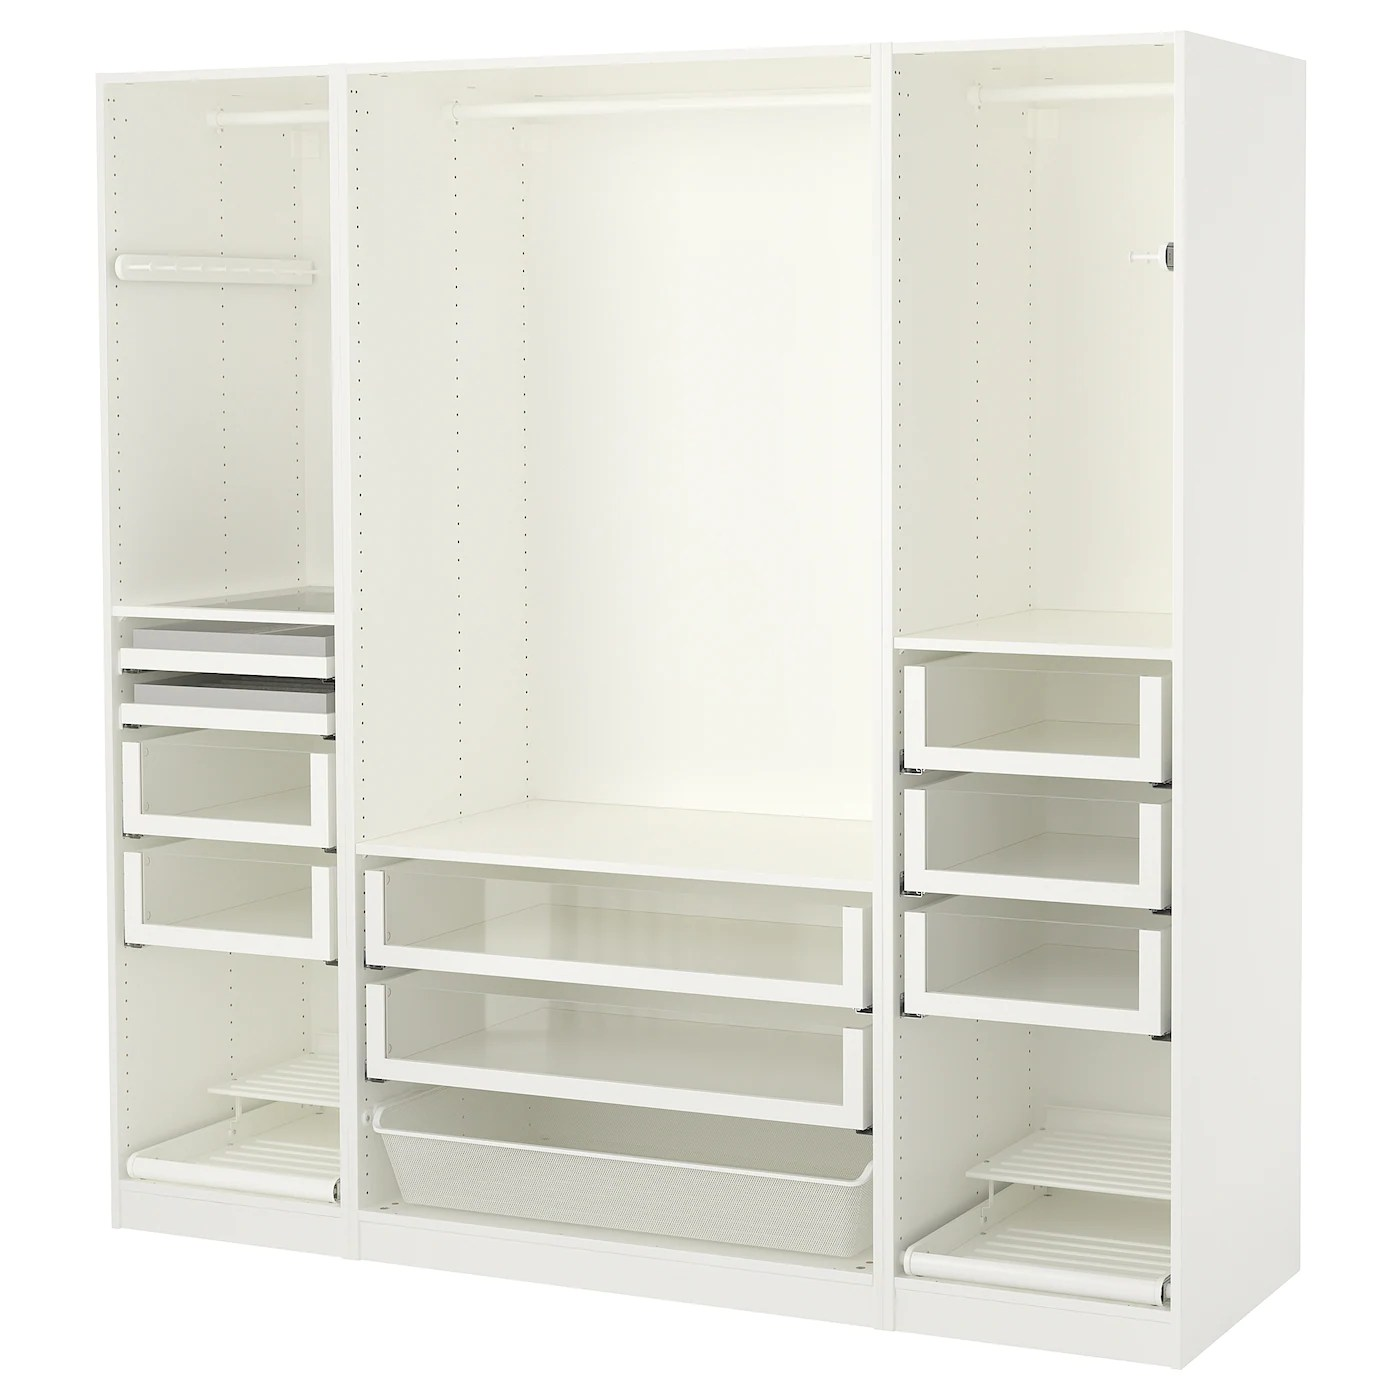 Garderobekast Pax Ikea.Ikea Pax Uk Fully Functional Ikea Fitted Wardrobe For Sloping Ceiling